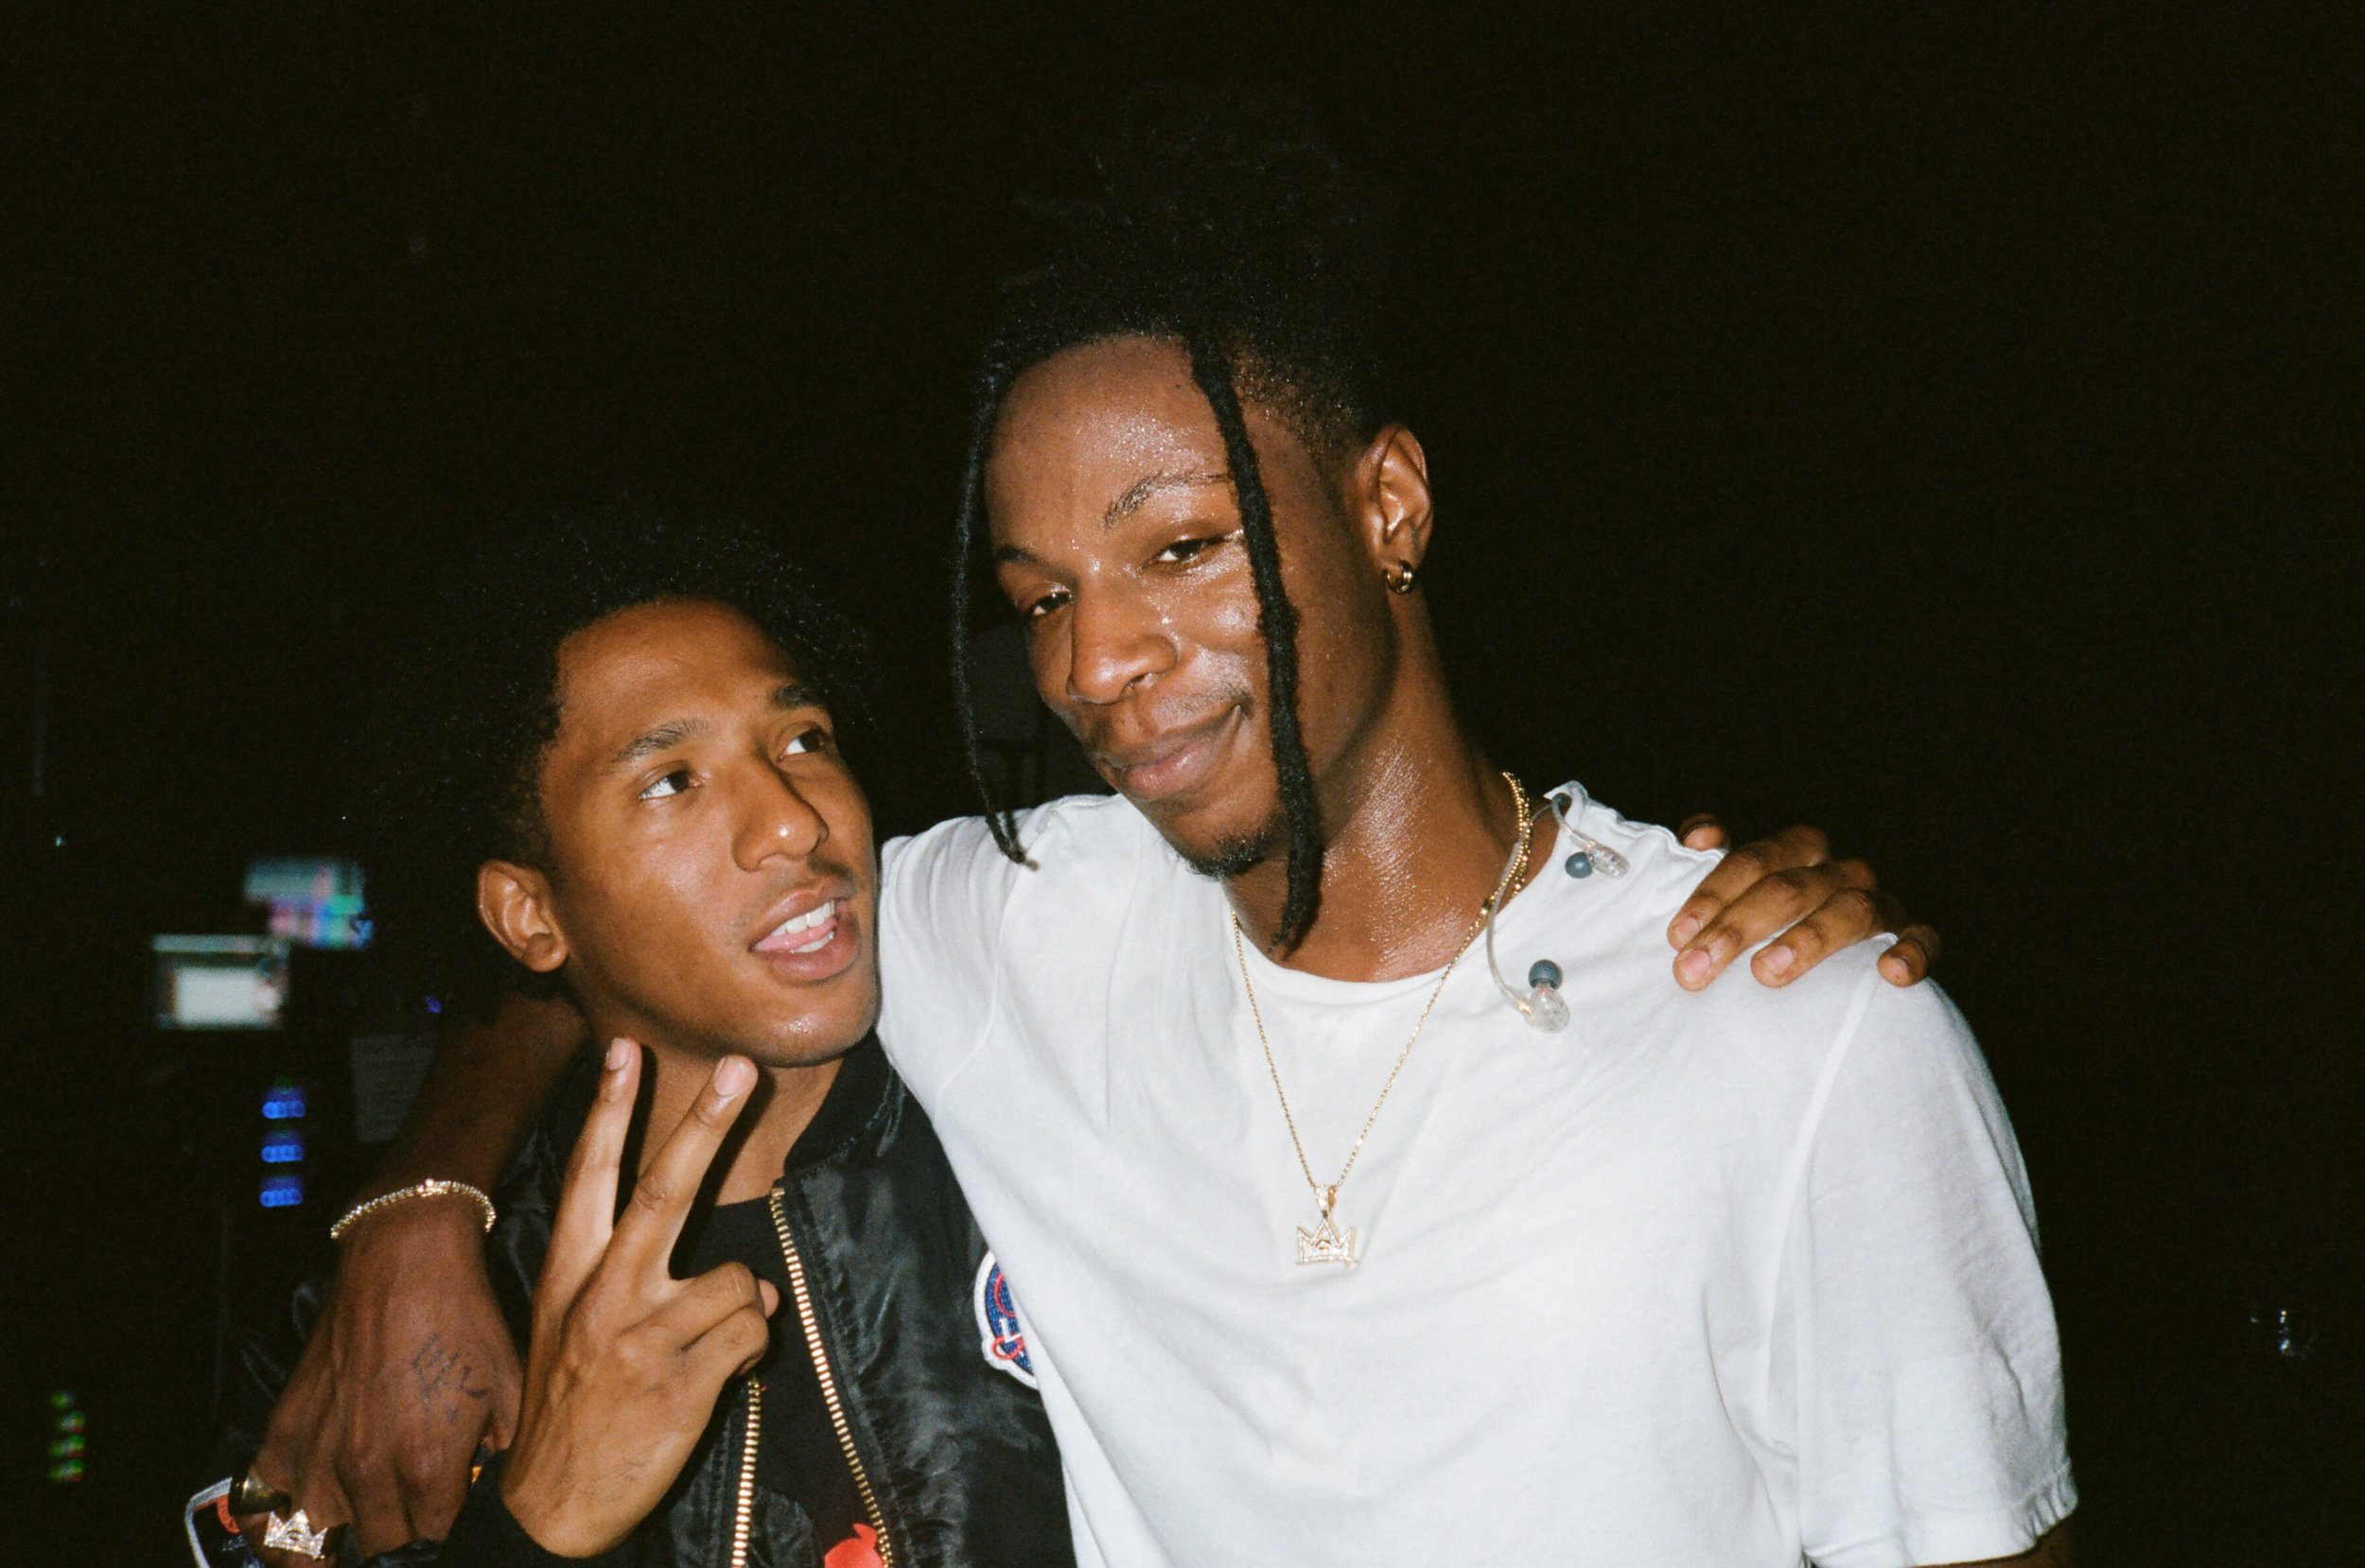 Damian and Joey Badass share a moment after his hometown performance in NYC